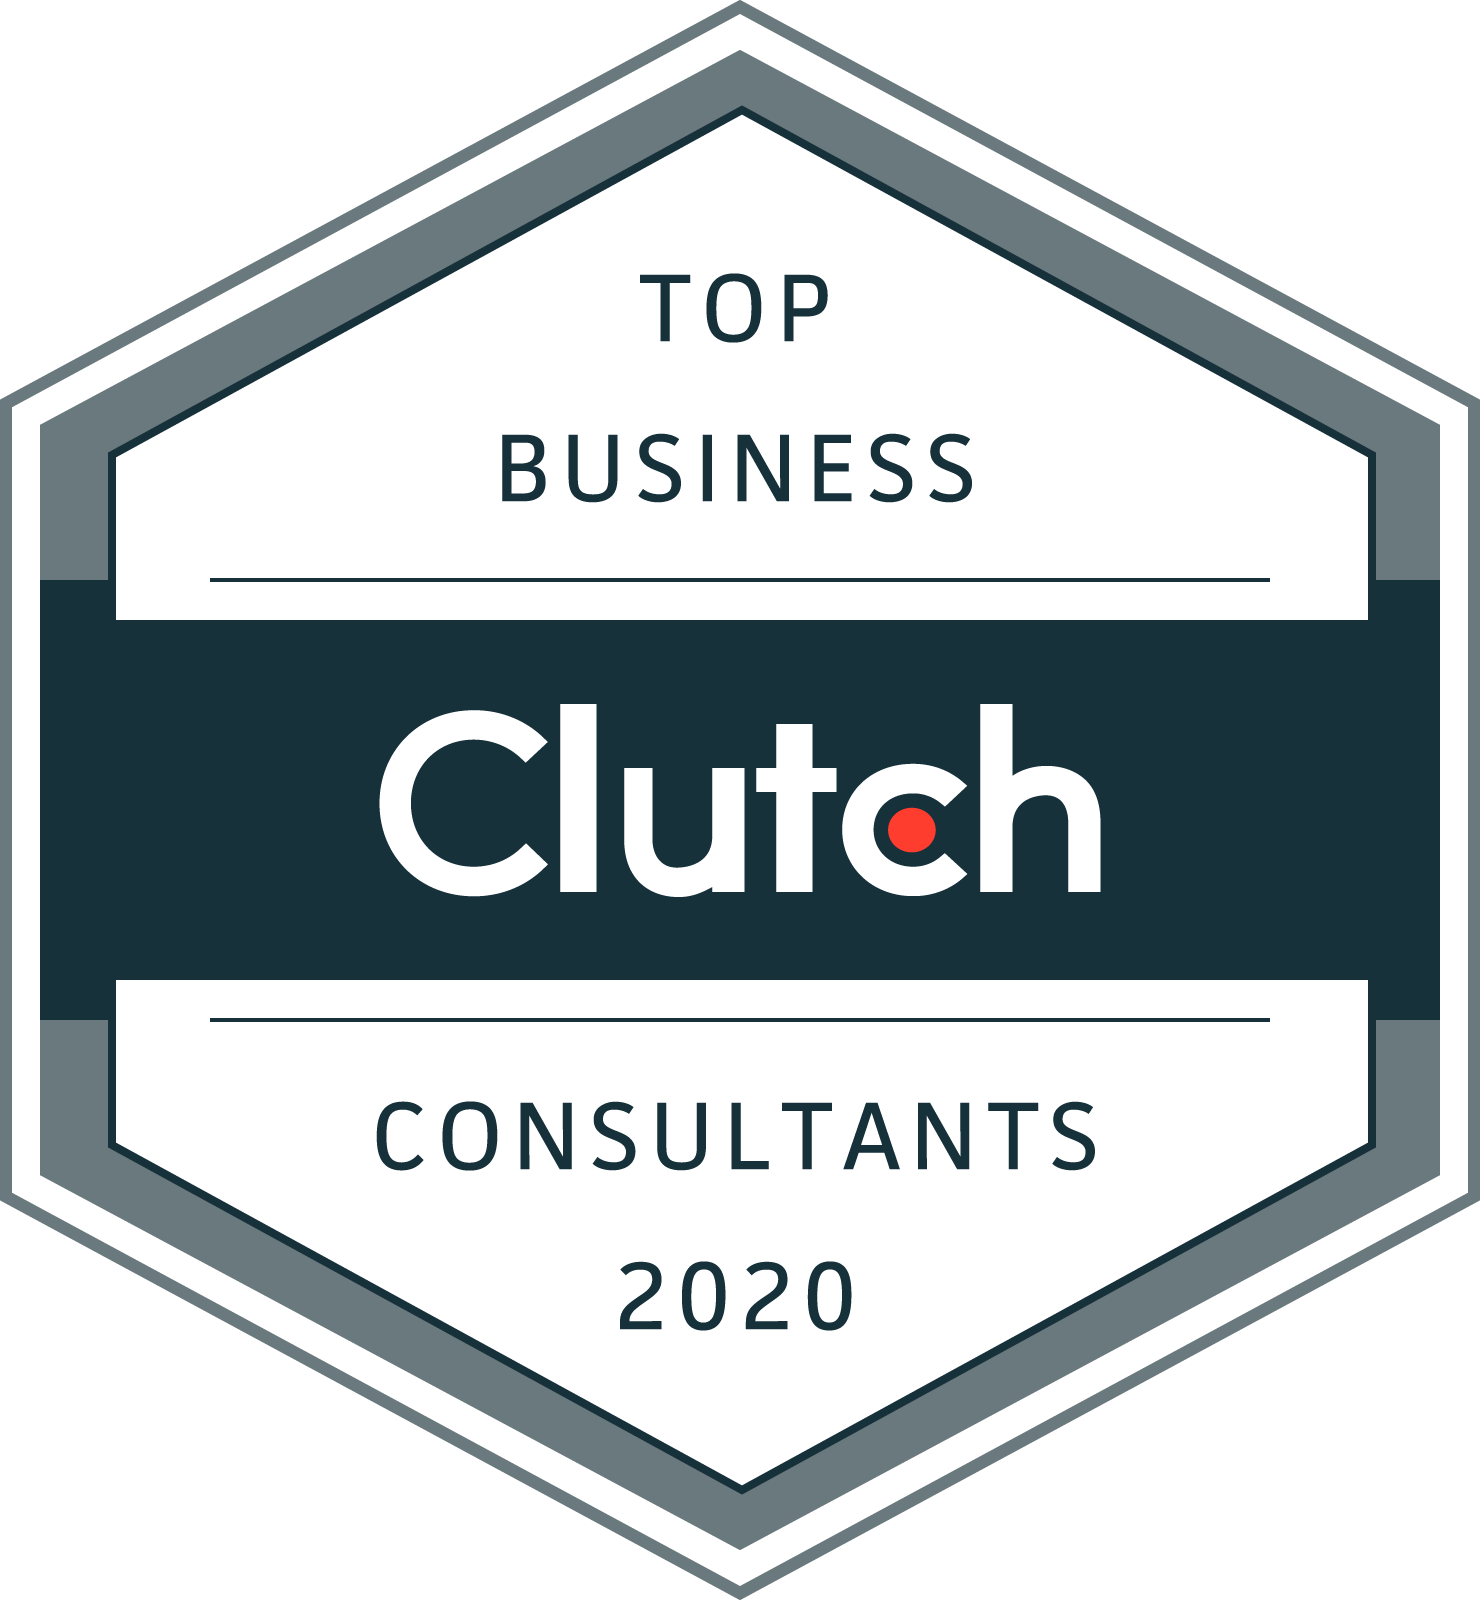 Aciron Clutch Top business consultants 2020 award